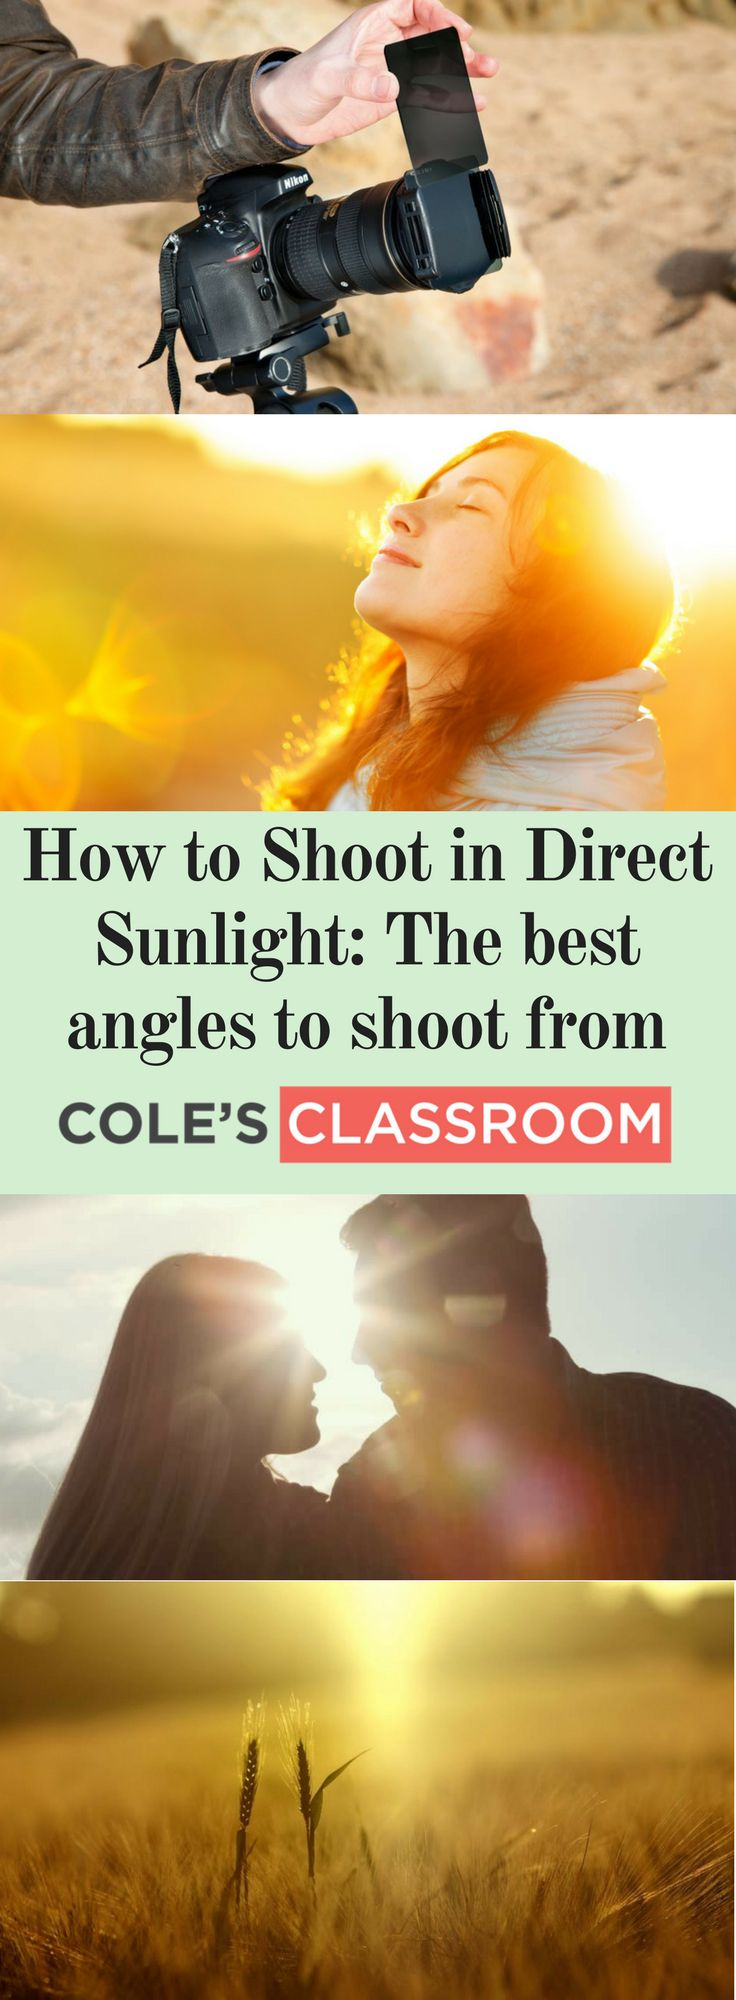 PHOTOGRAPHY TIPS & TECHNIQUE: How to Shoot in Direct Sunlight: The best angles to shoot from. Find out more at: https://www.colesclassroom.com/how-to-shoot-in-direct-sunlight/